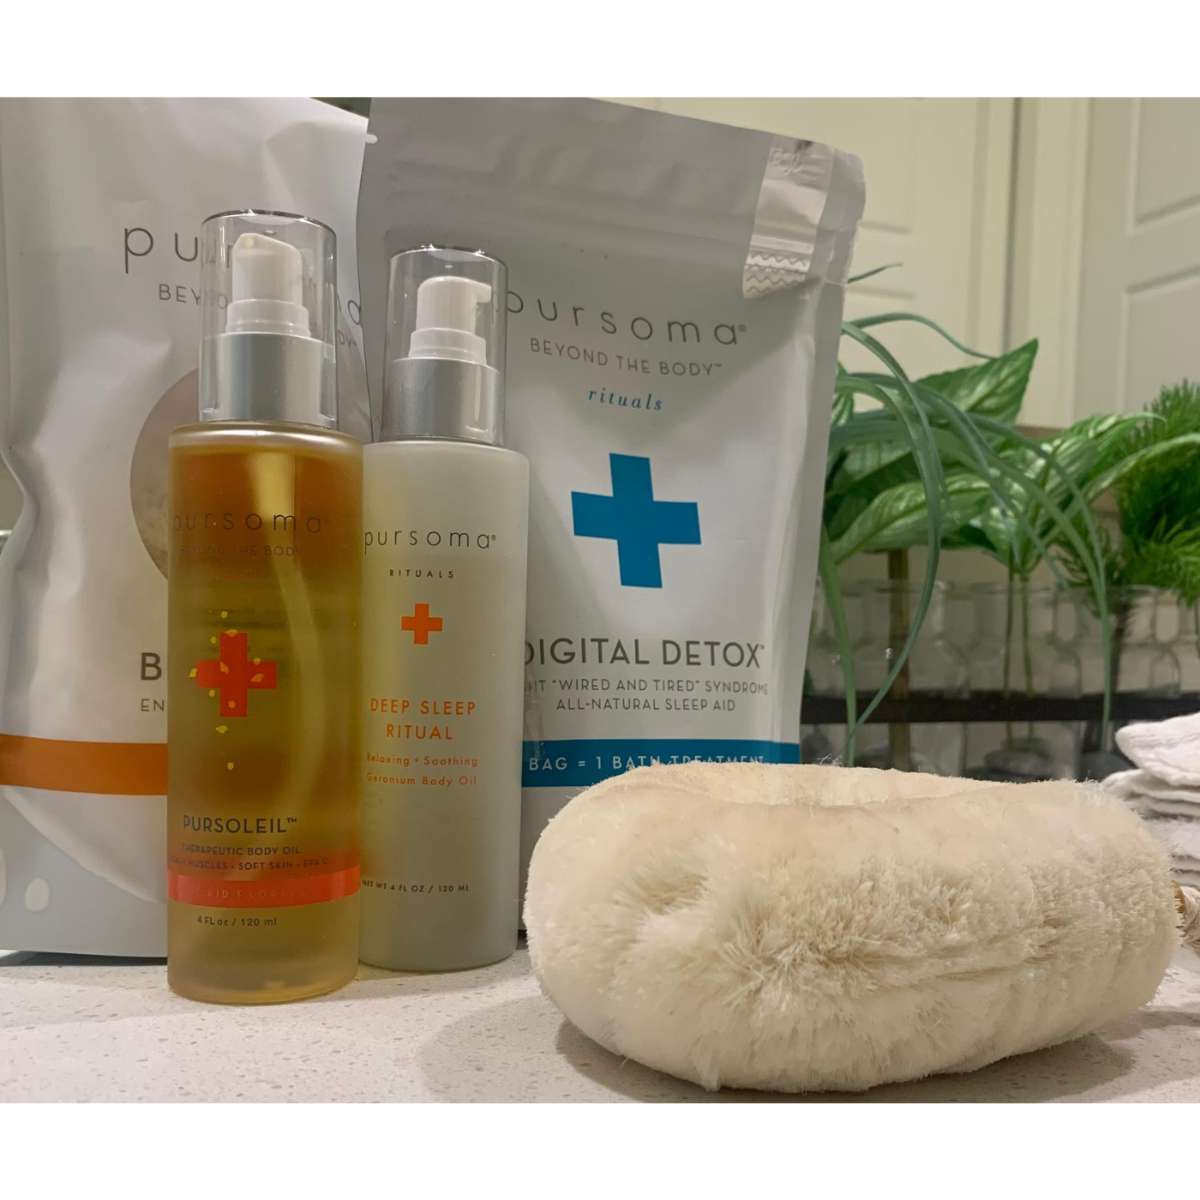 #Selfcare is the Best Care, Loving my Pursoma Kit